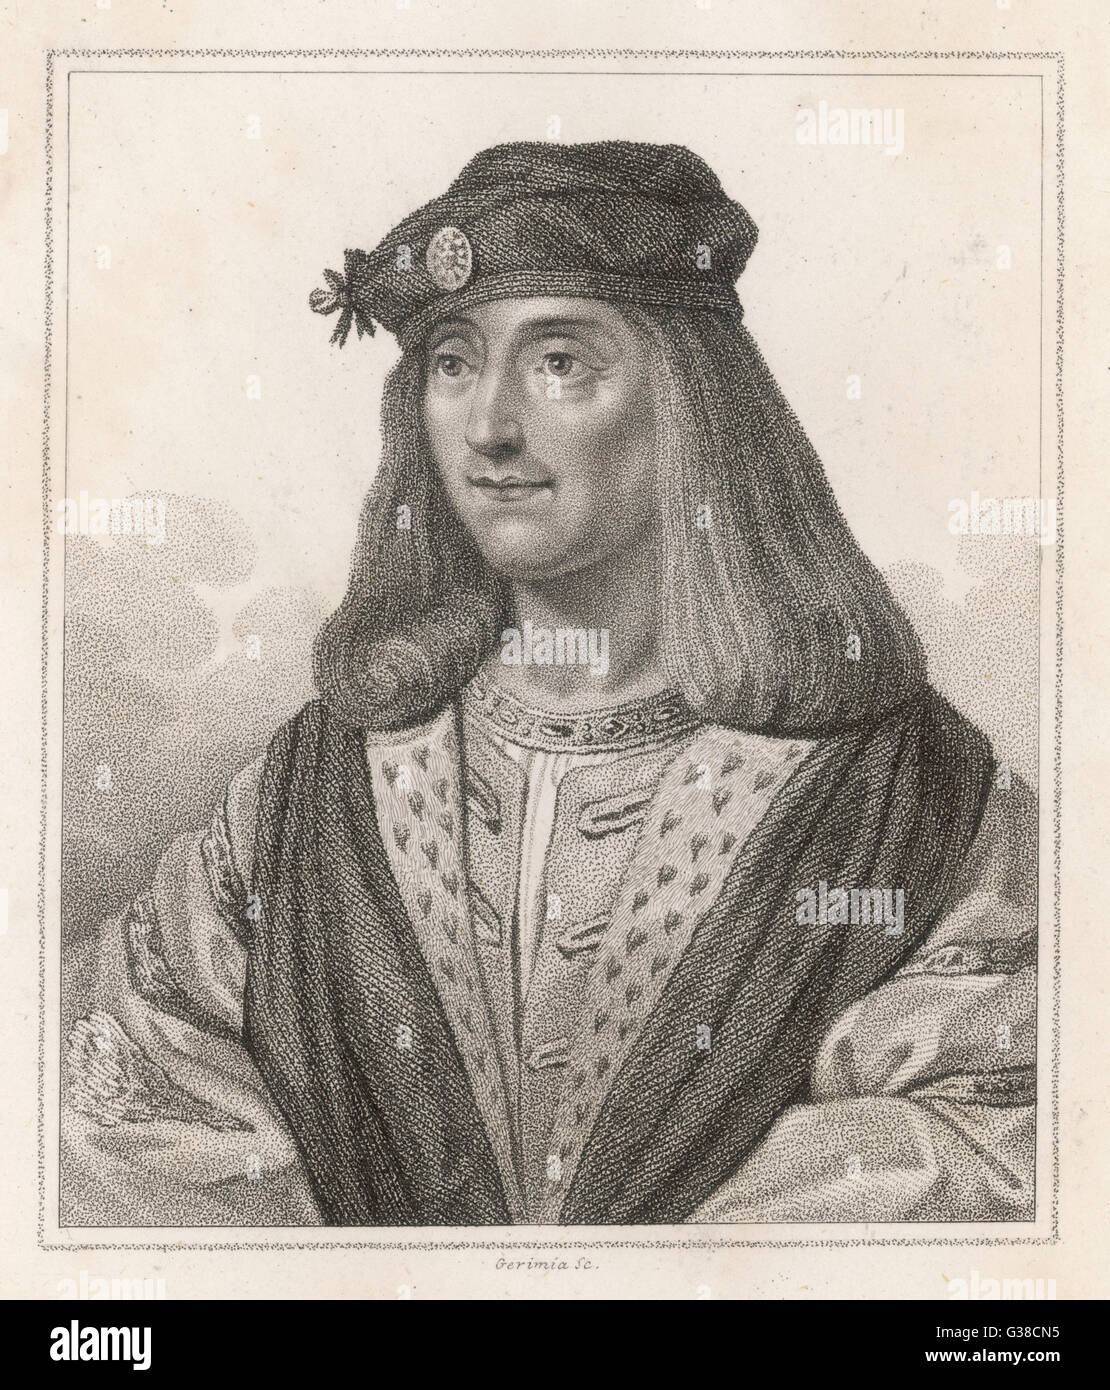 JAMES IV OF SCOTLAND  Invaded England and was  killed at Flodden Field       Date: 1473 - 1513 - Stock Image